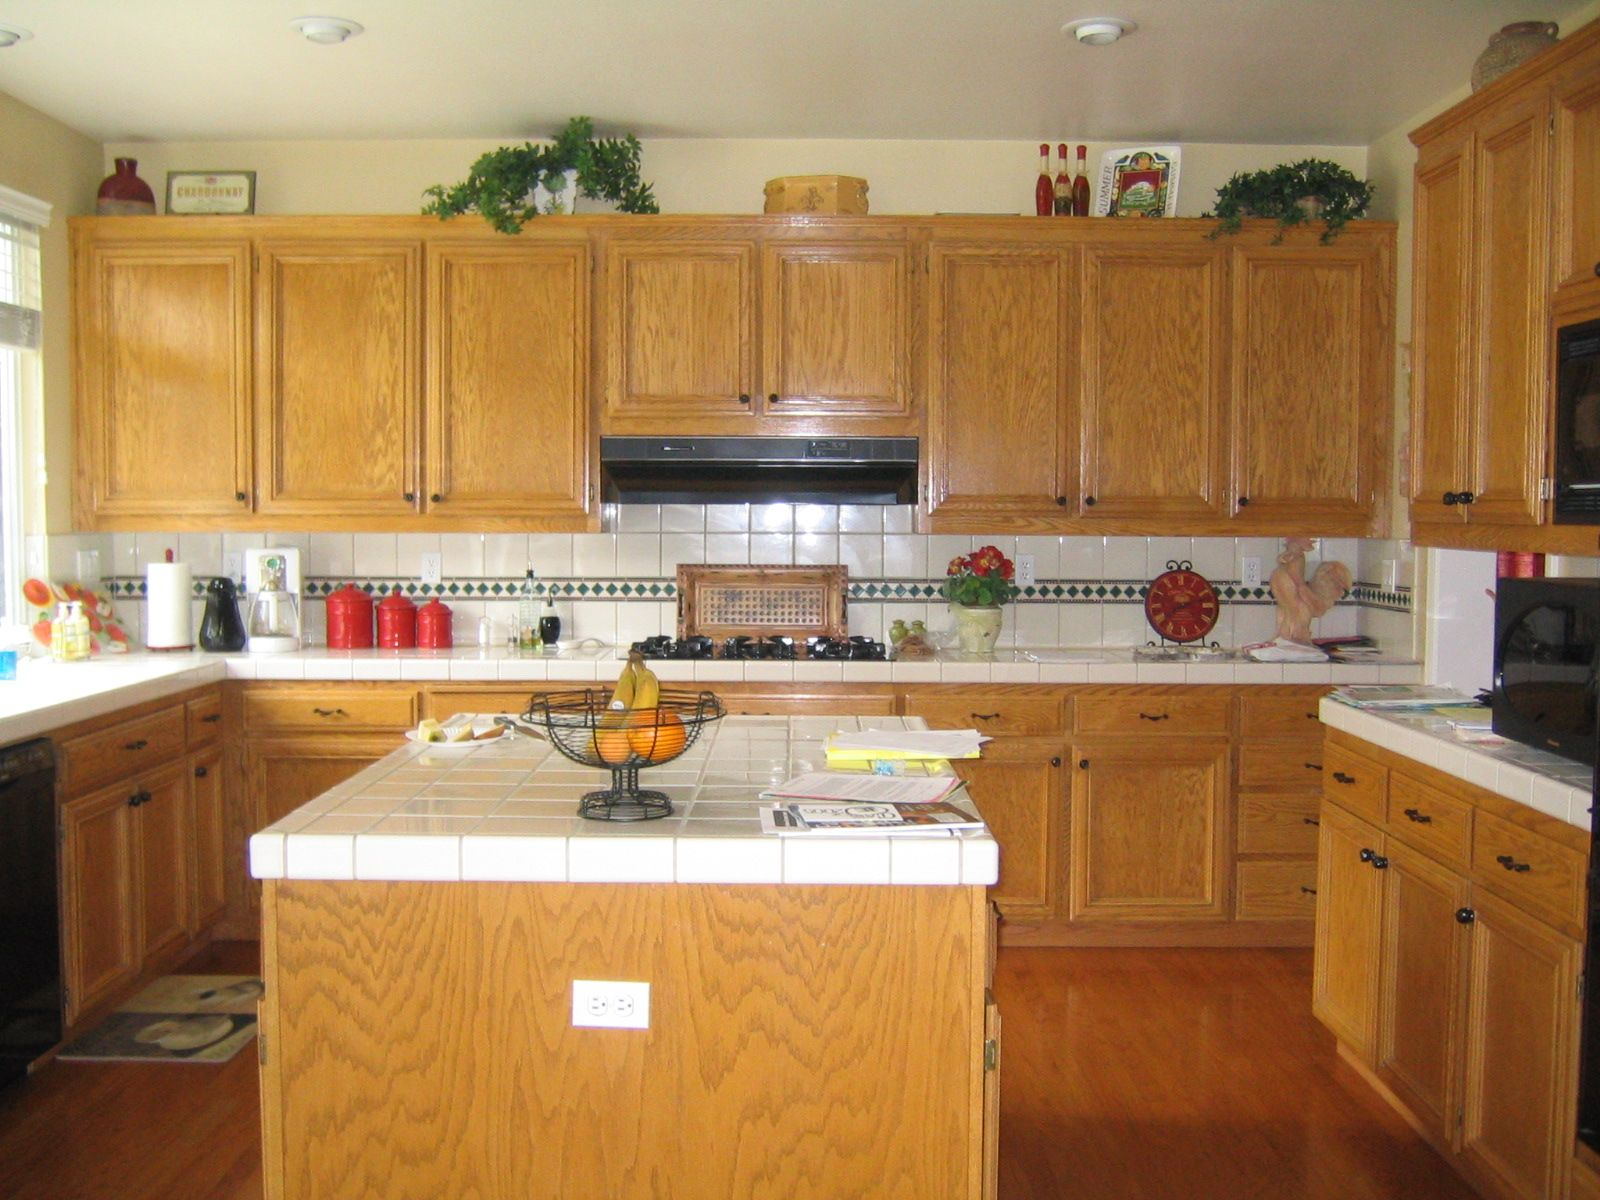 old oak kitchen cabinets popular kitchen themes wood patterns view 24013